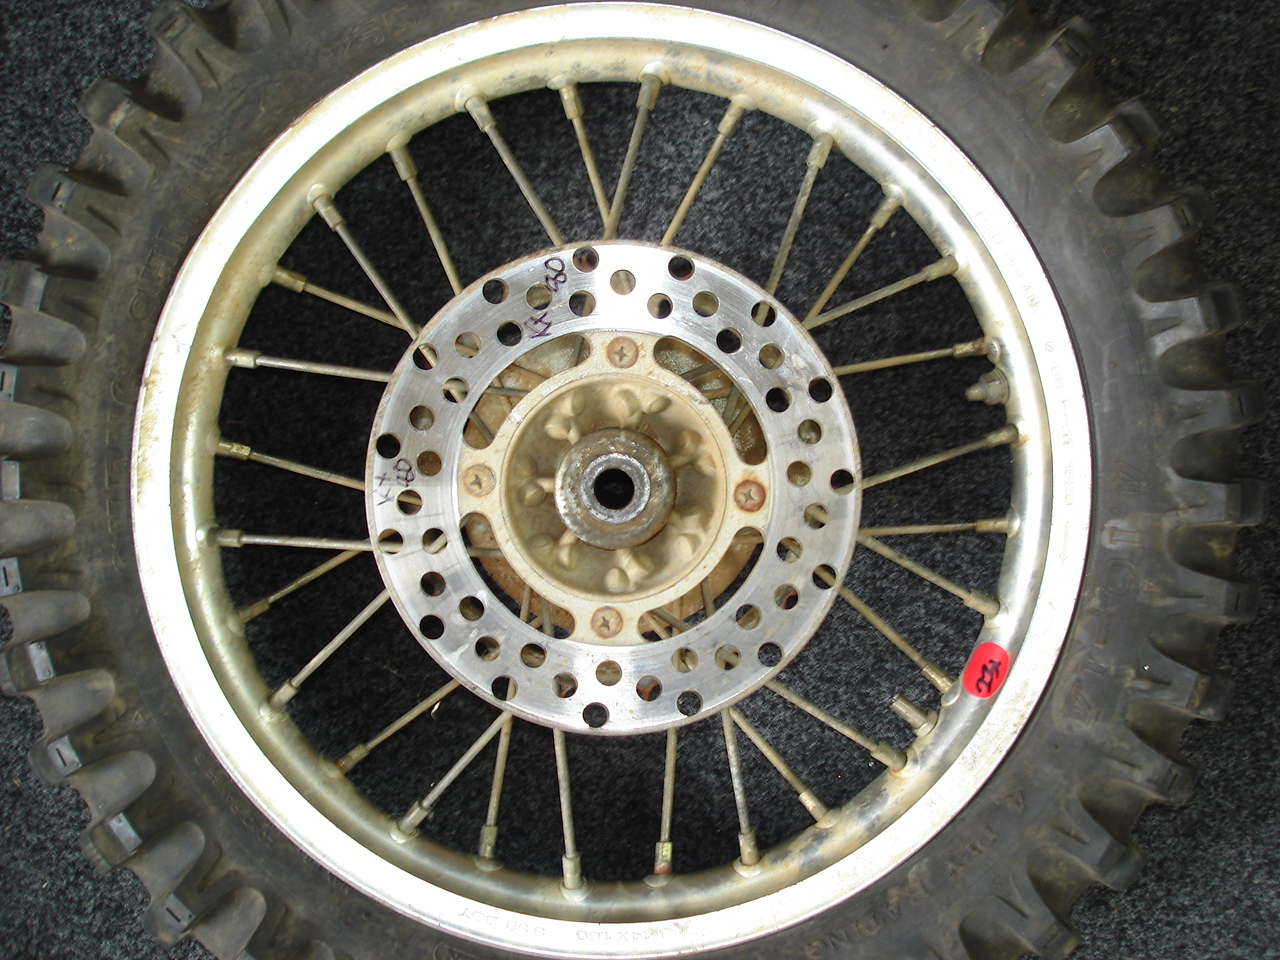 TYRE CHANGE & RIM CLEAN DIRT BIKE